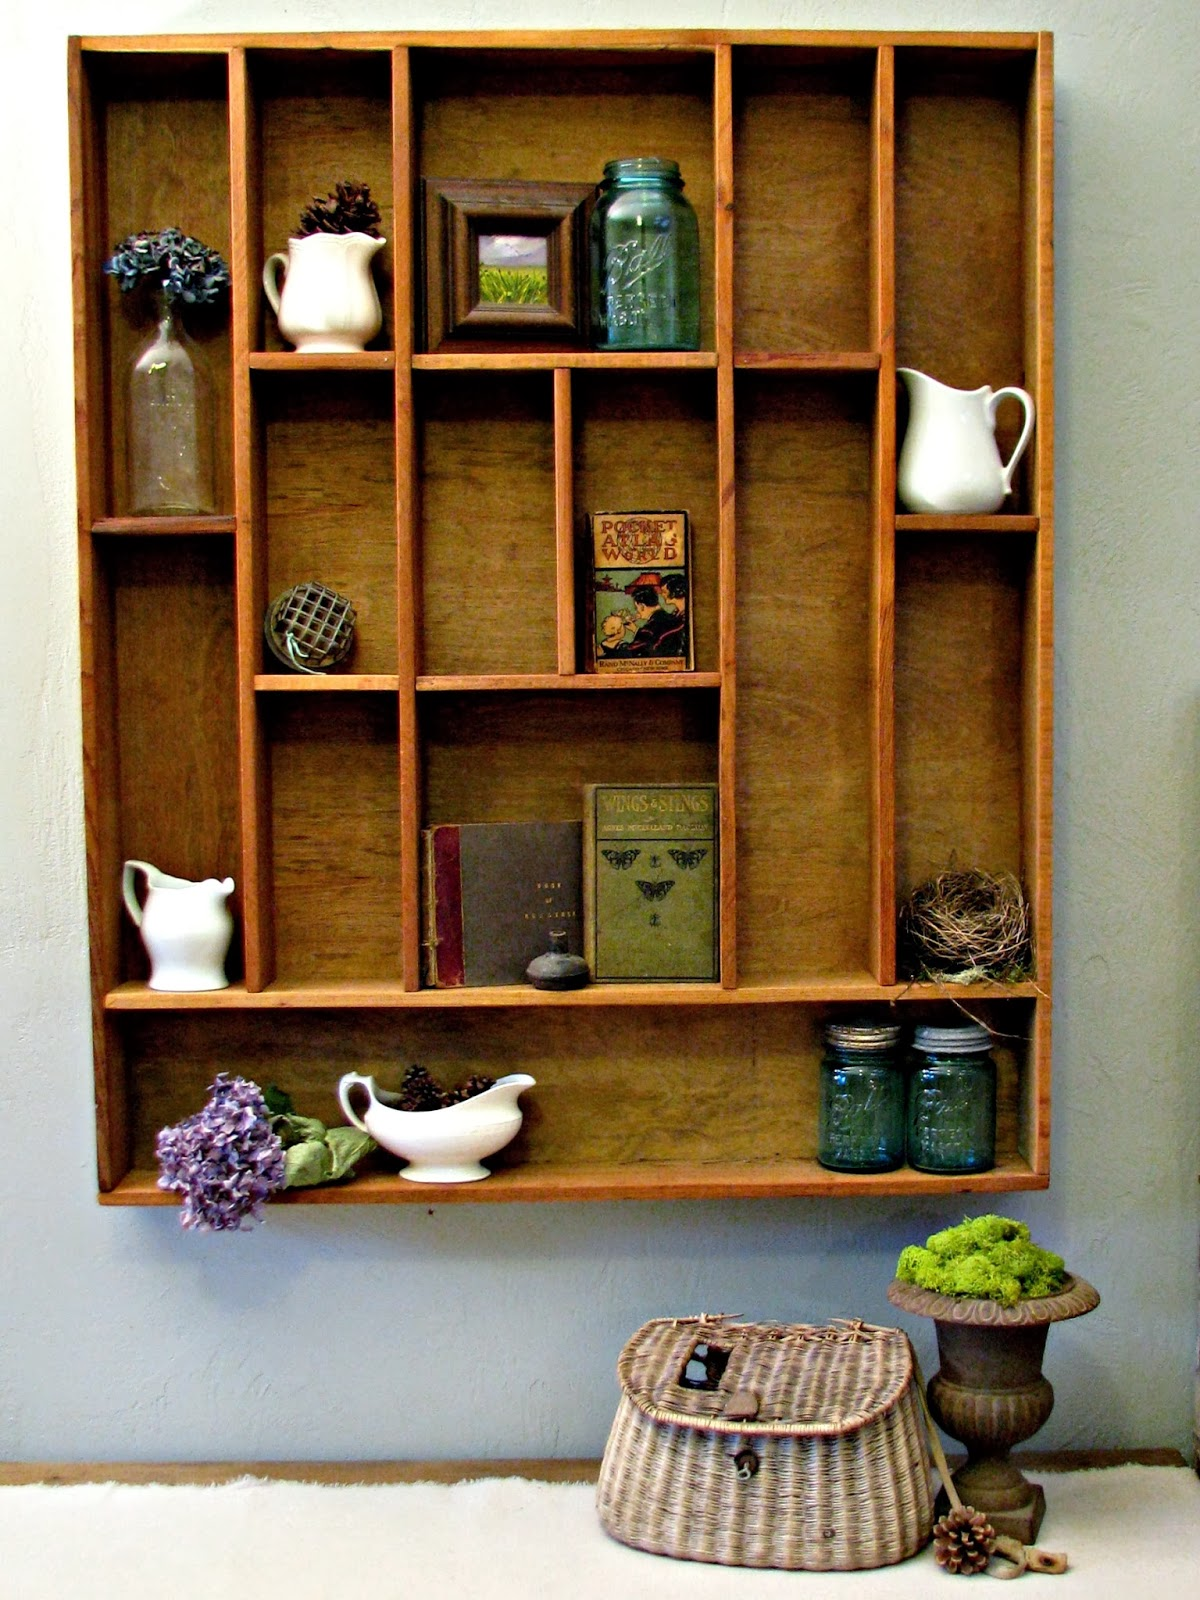 Blue Roof Cabin Diy Letterpress Tray Display Shelf Tutorial